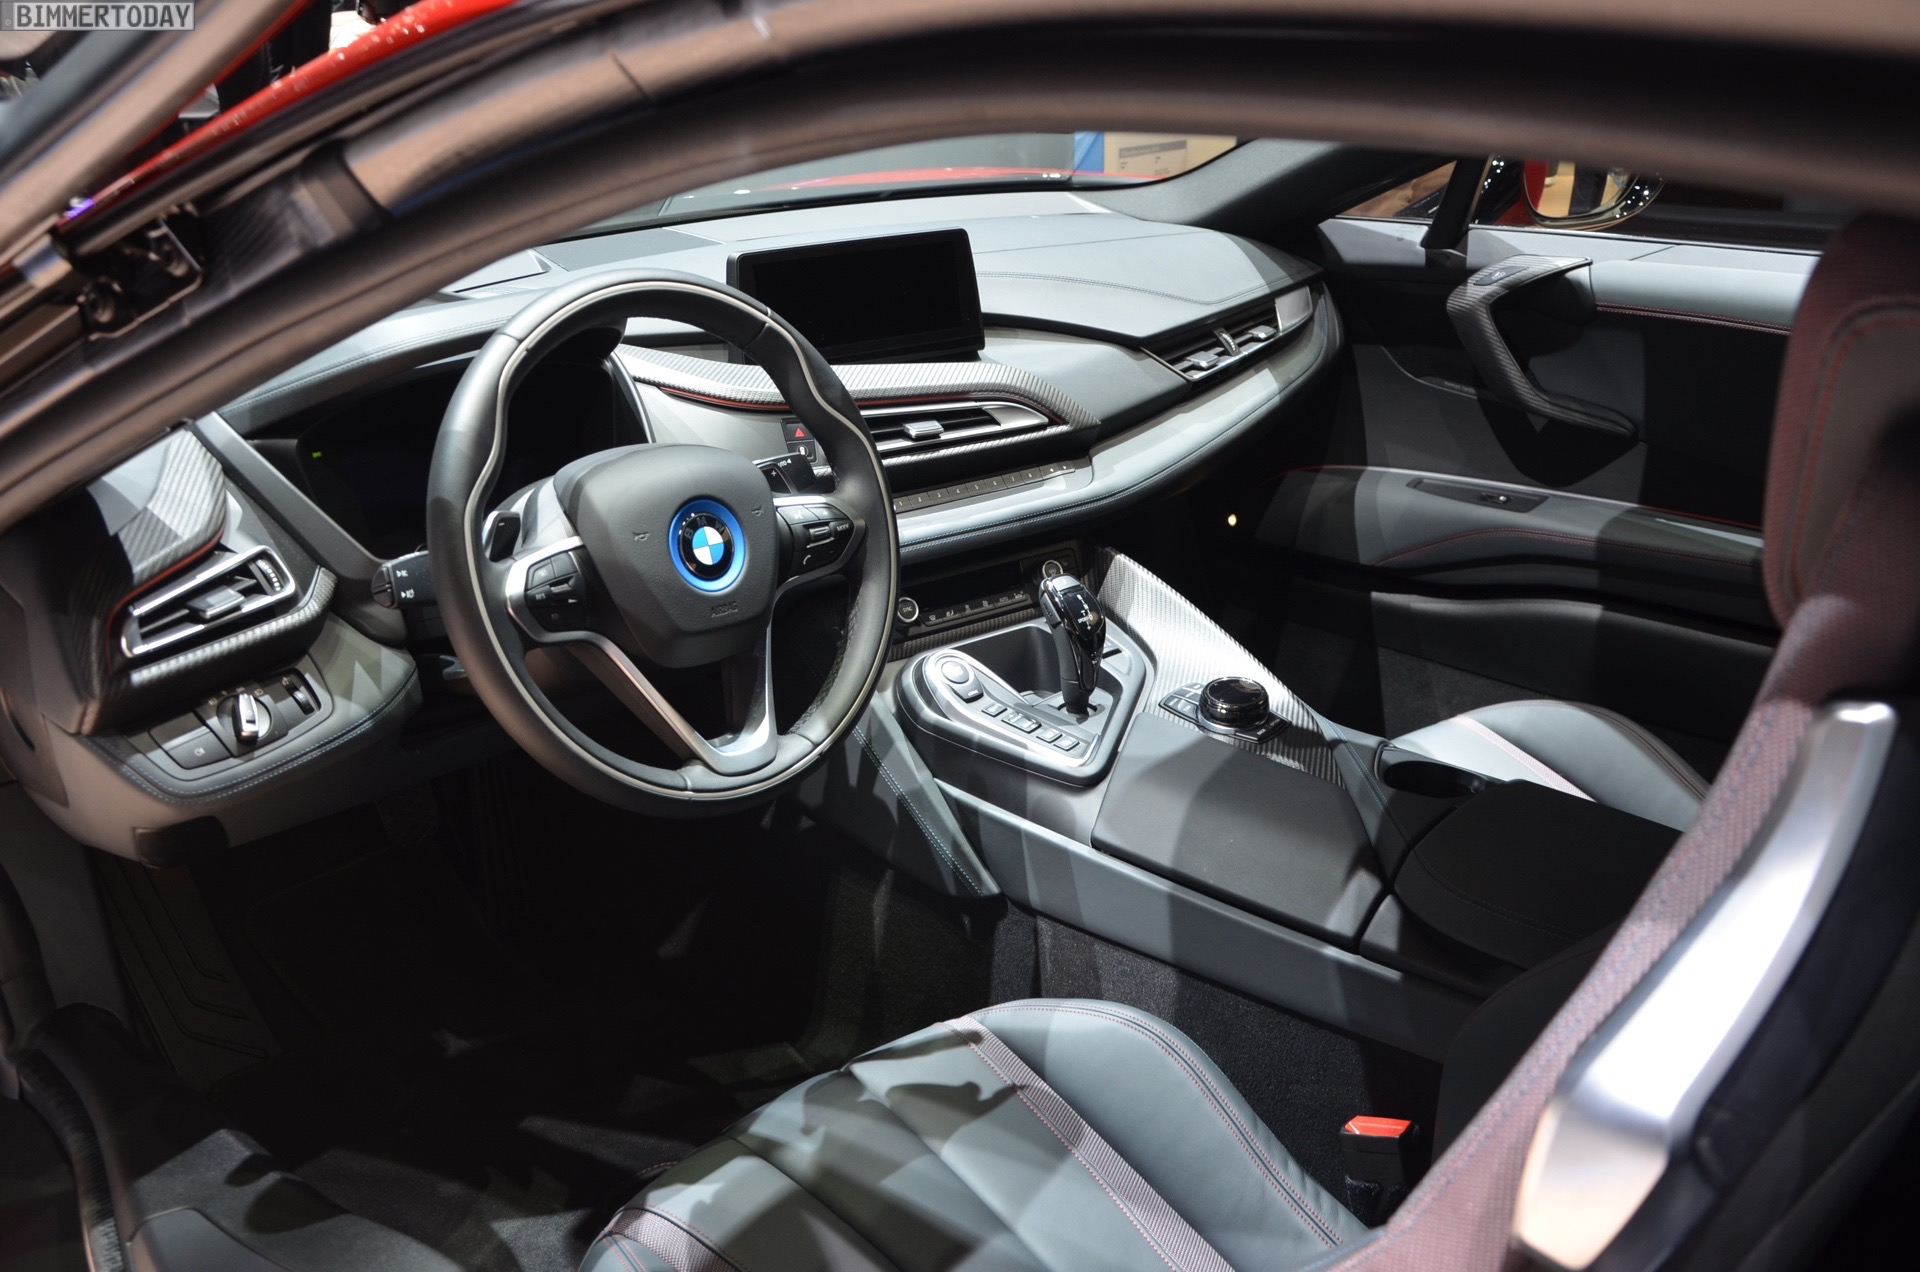 2016 Geneva Motor Show Bmw I8 Protonic Red Edition Makes World Debut